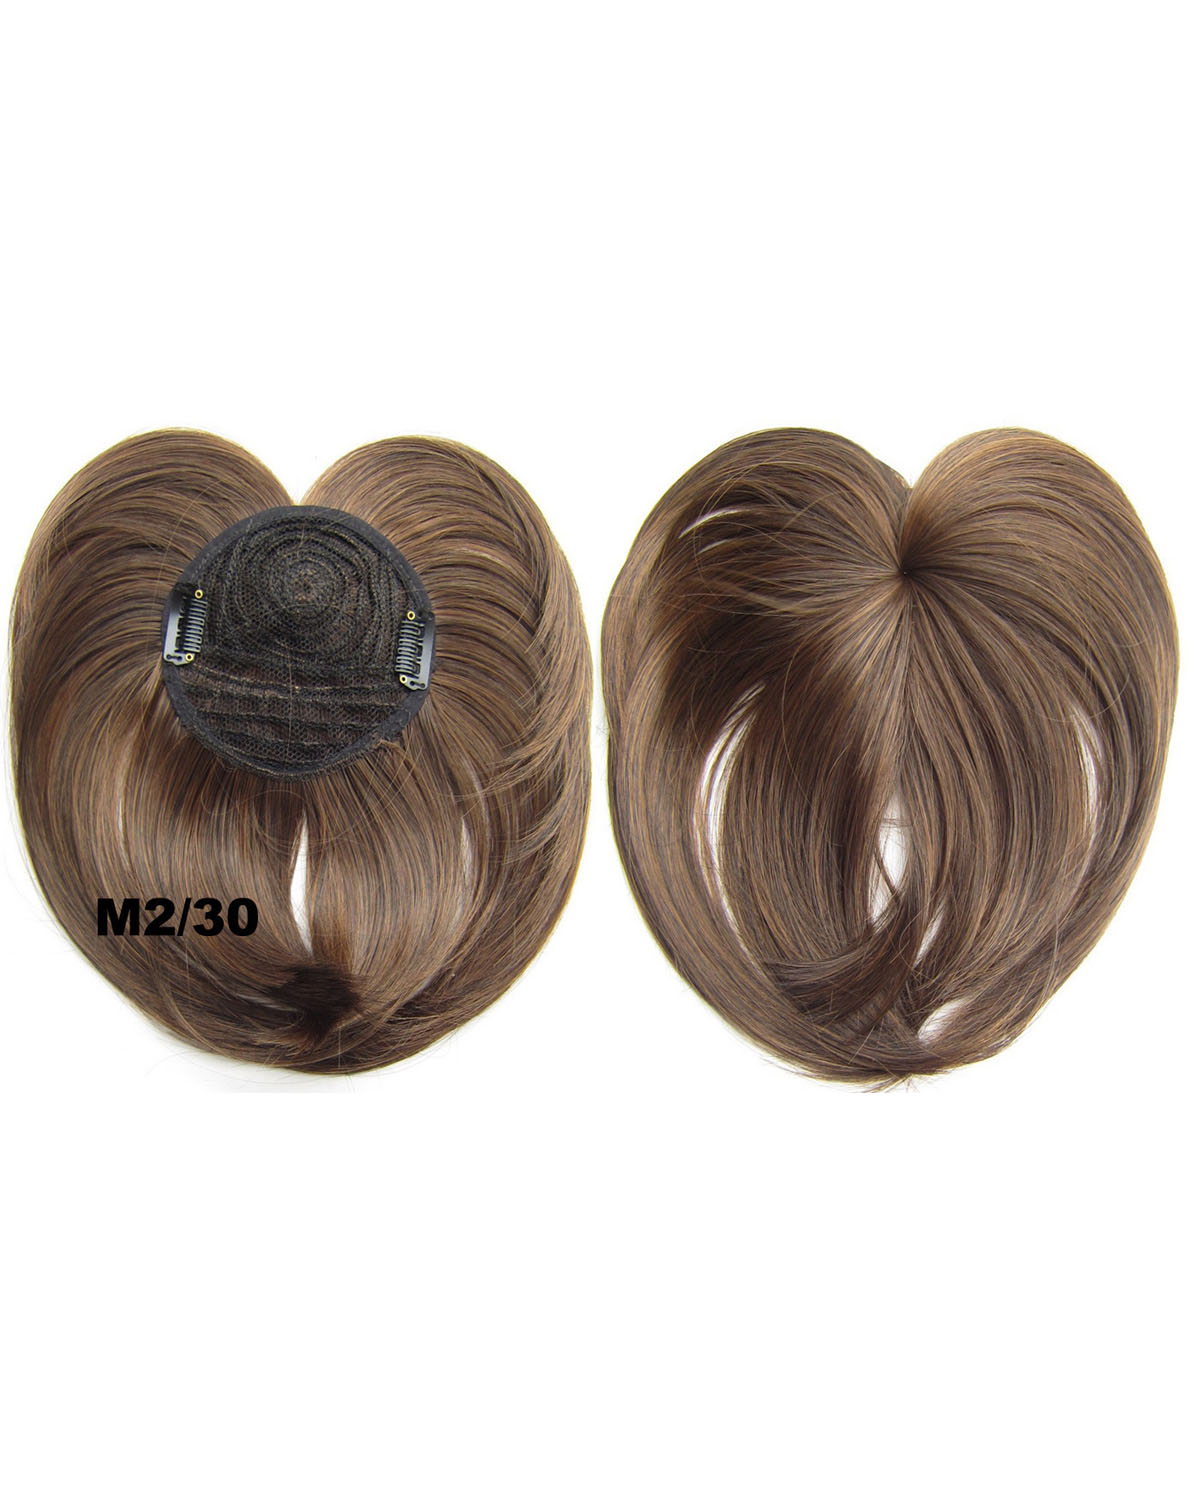 Girls Newly Straight Short Bangs Clip in Synthetic Hair Extension Fringe Bangs HairpieceM2/30